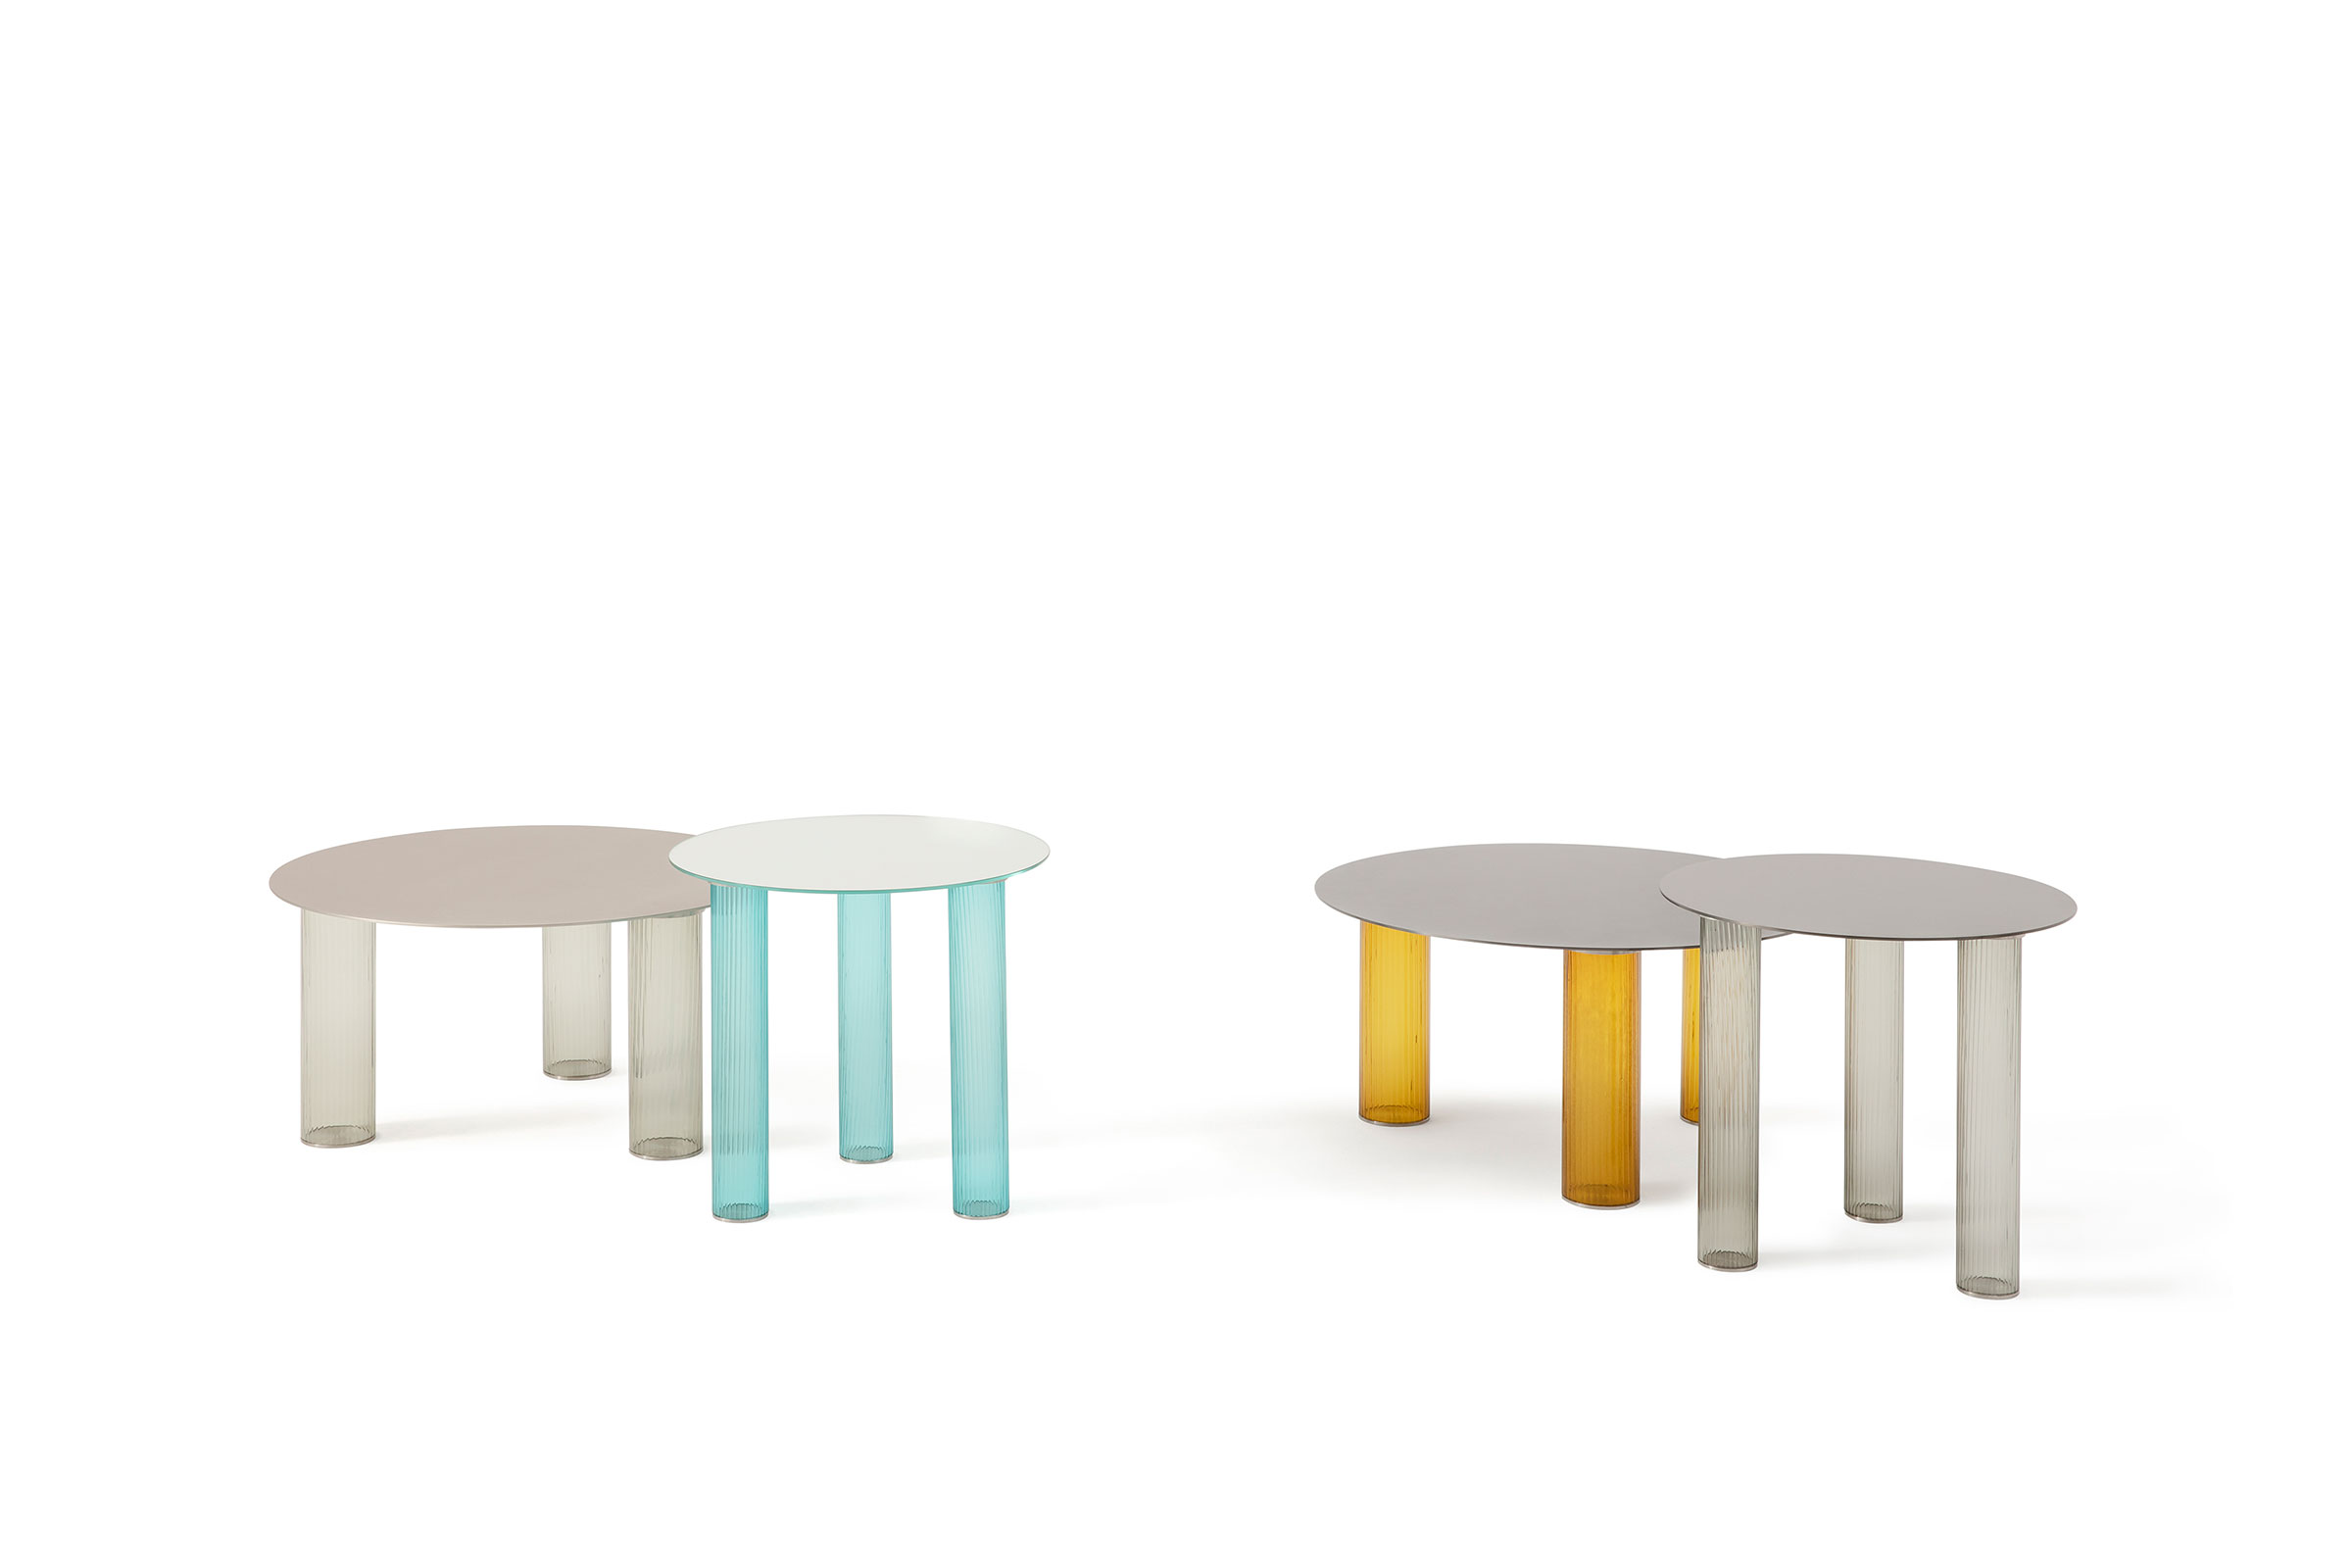 Sebastian Herkner's Echino collection. Image courtesy of Zanotta